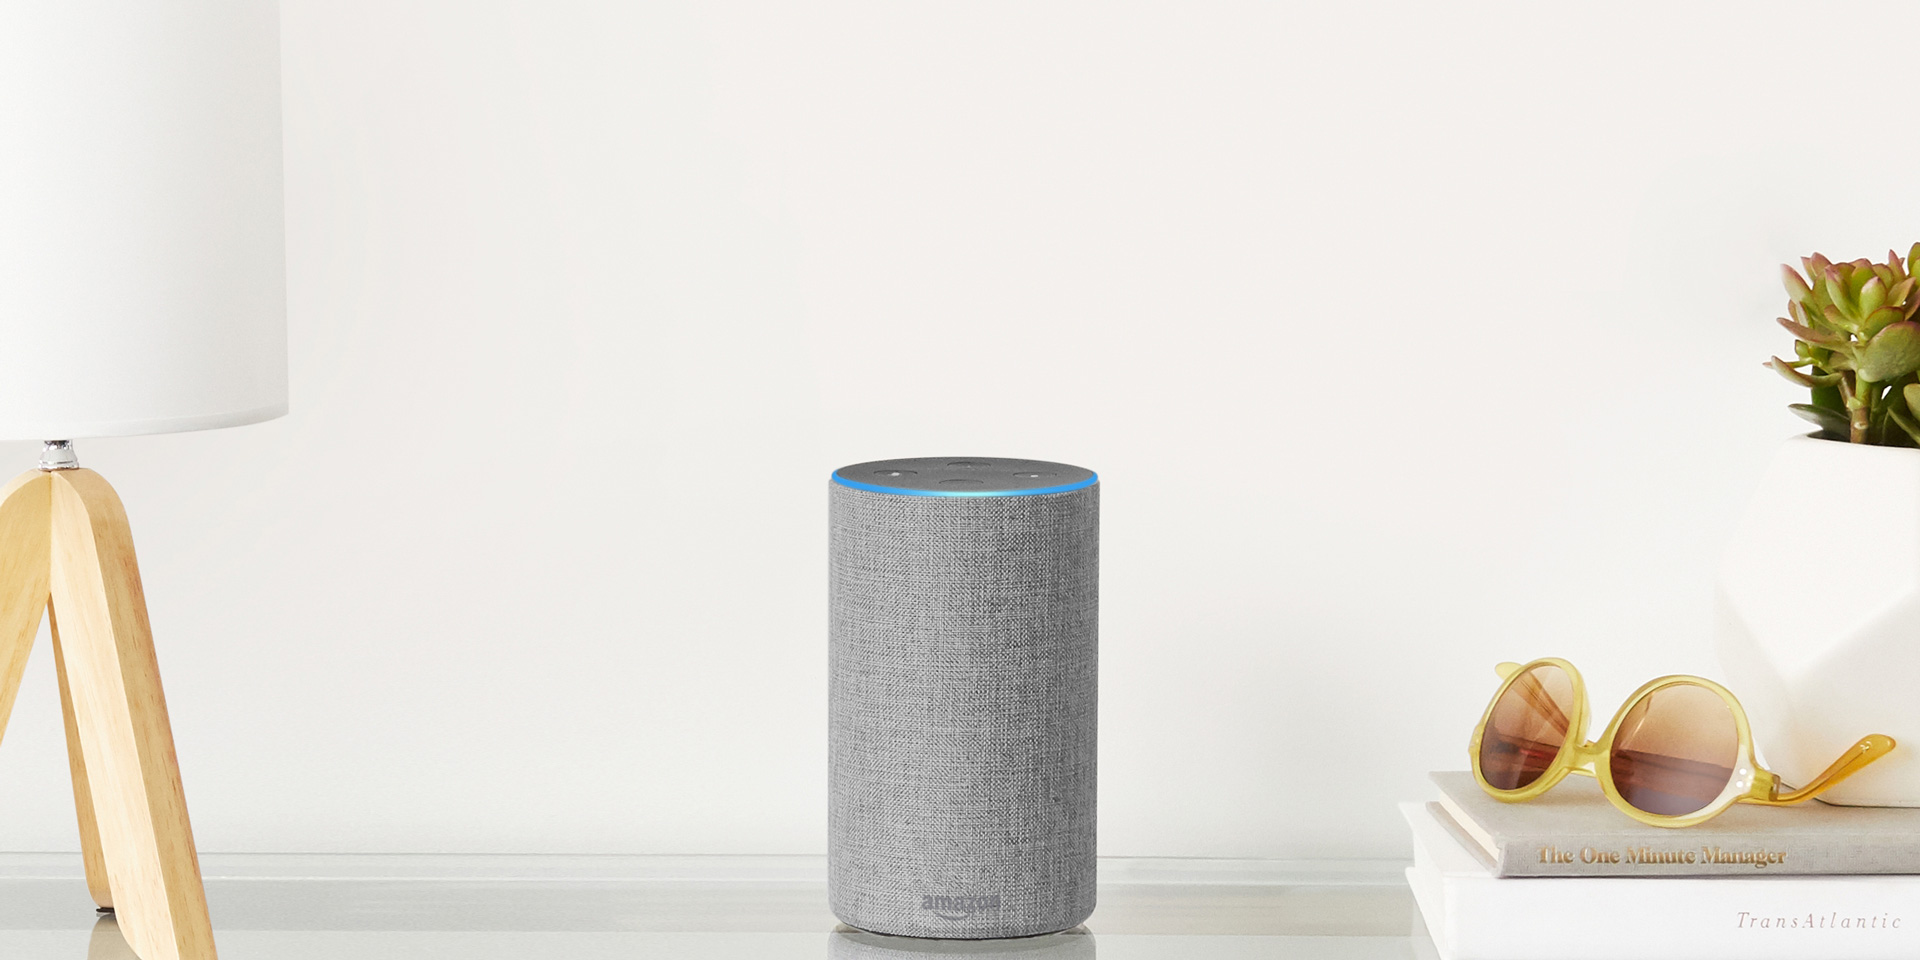 Could hotel workers be replaced by Amazon Alexa?